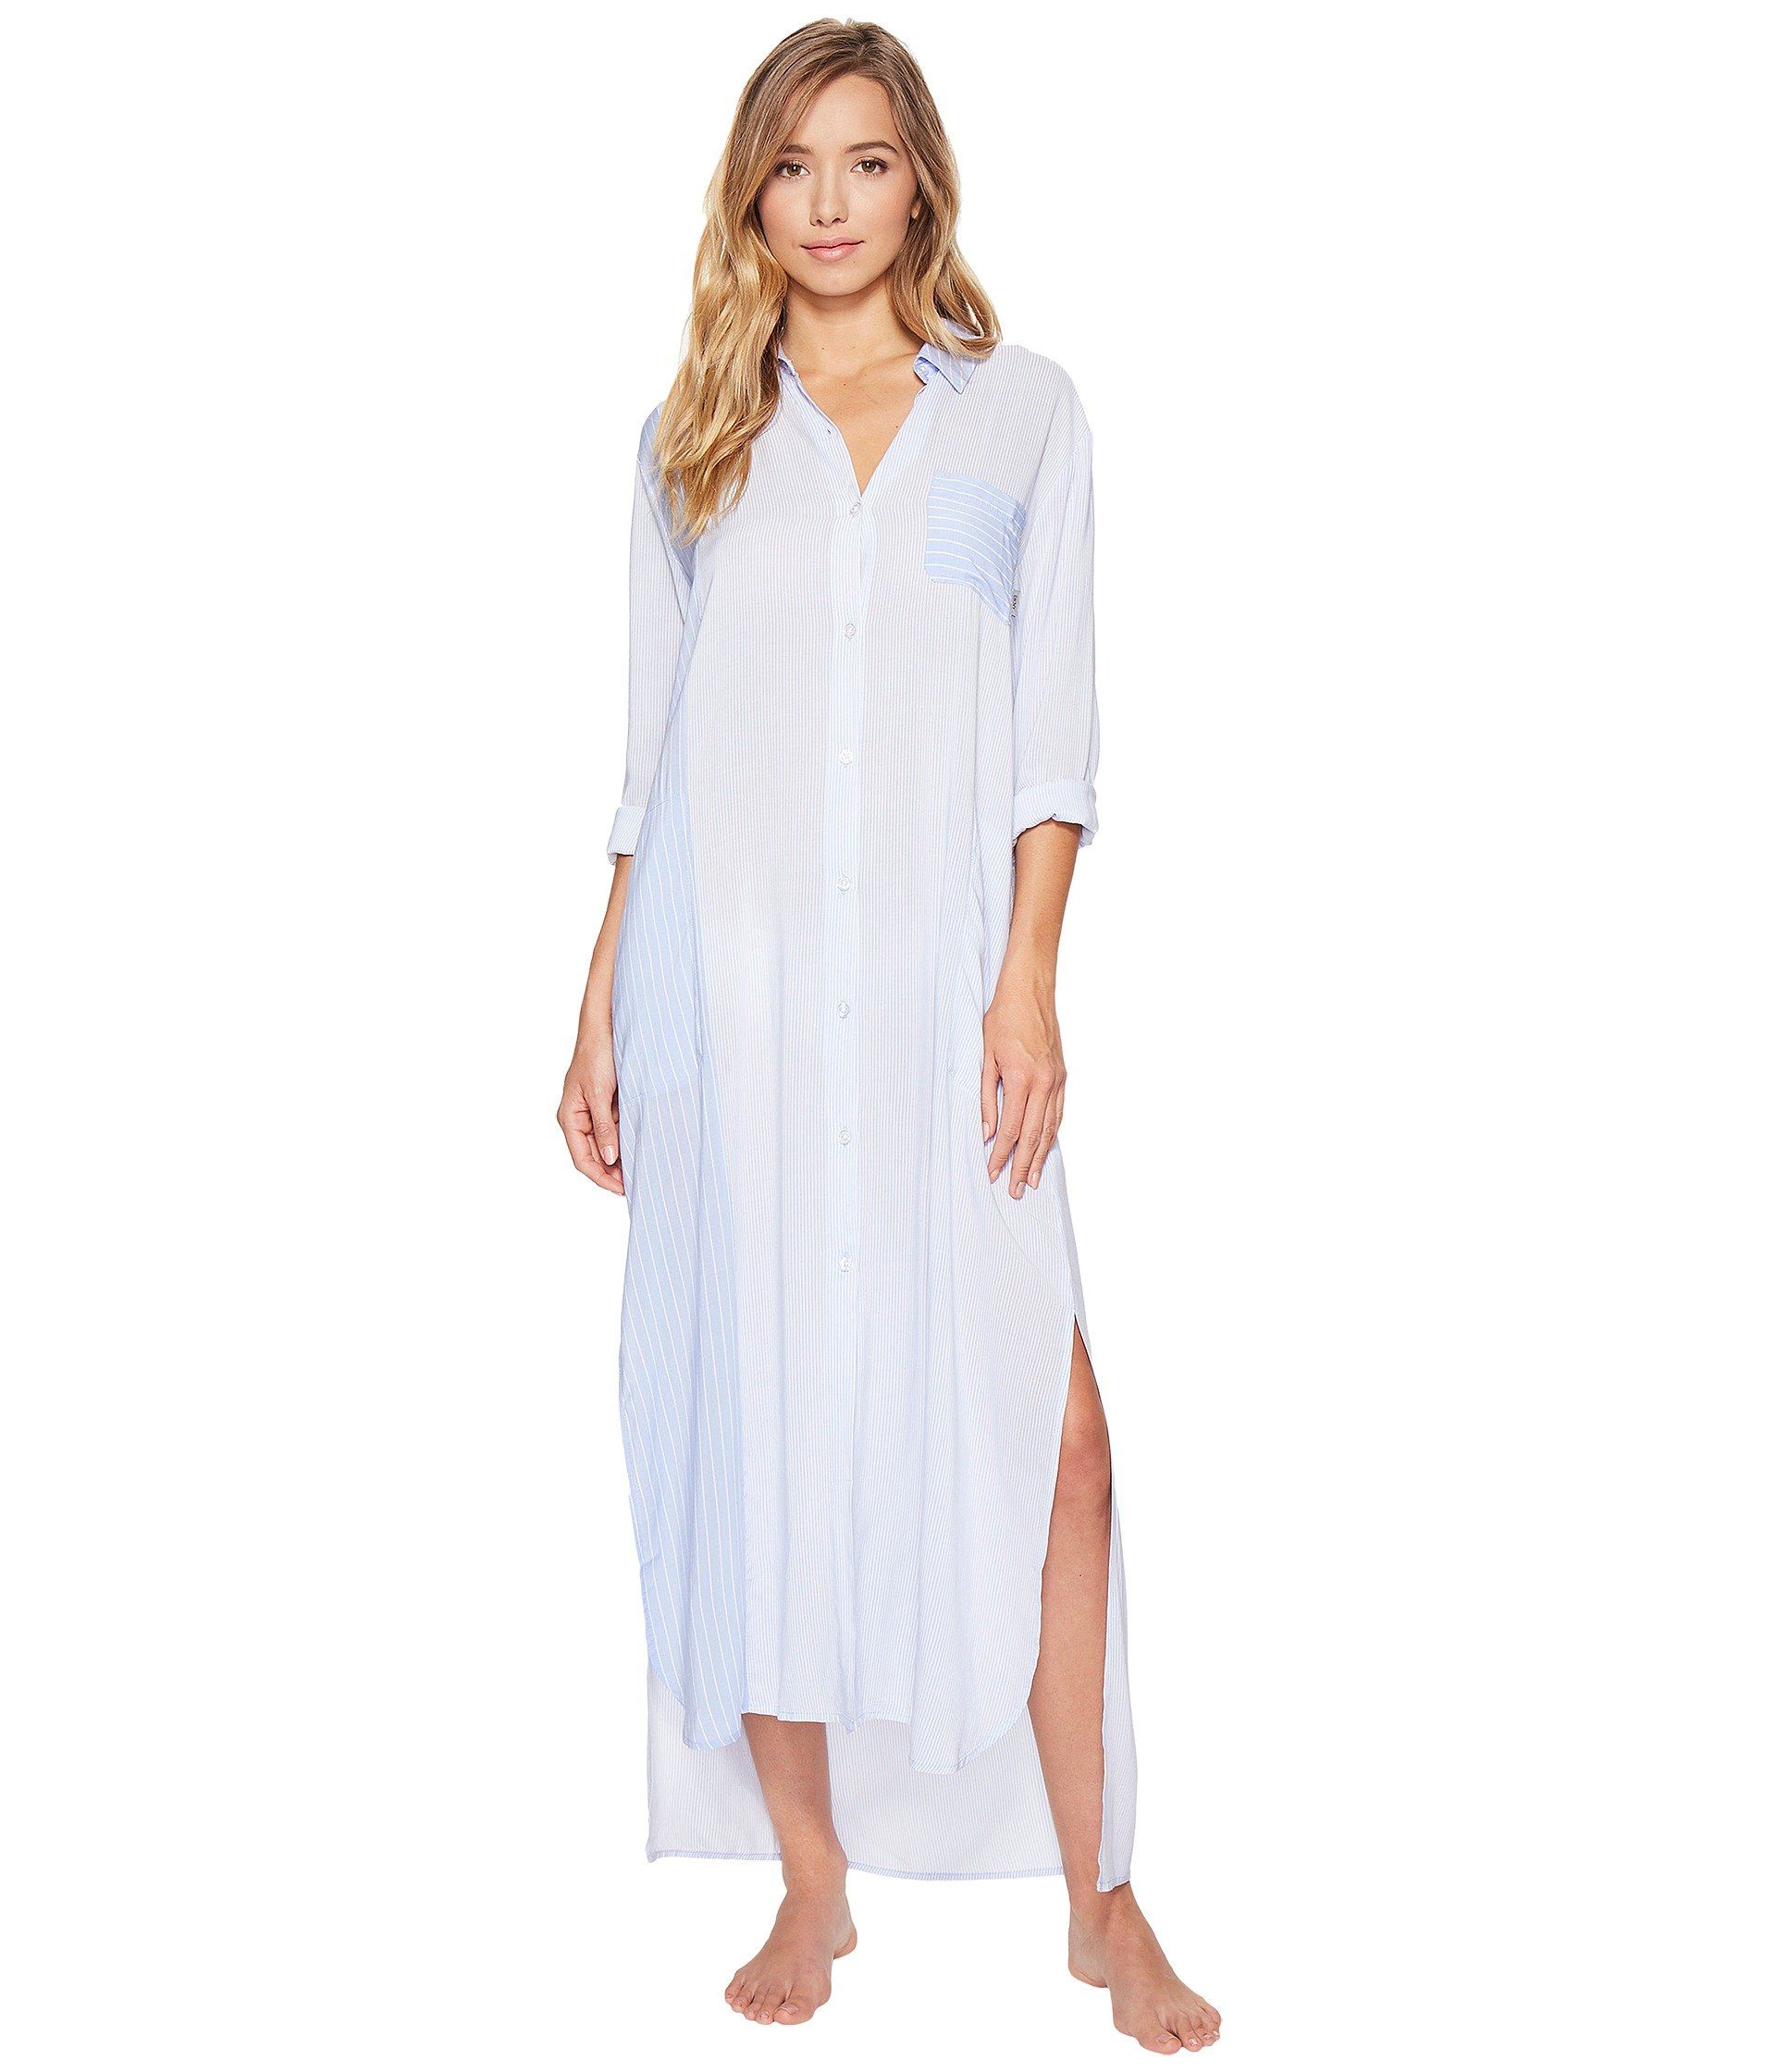 Babydoll DKNY Fashion Long Sleeve Maxi Robe  + DKNY en VeoyCompro.net